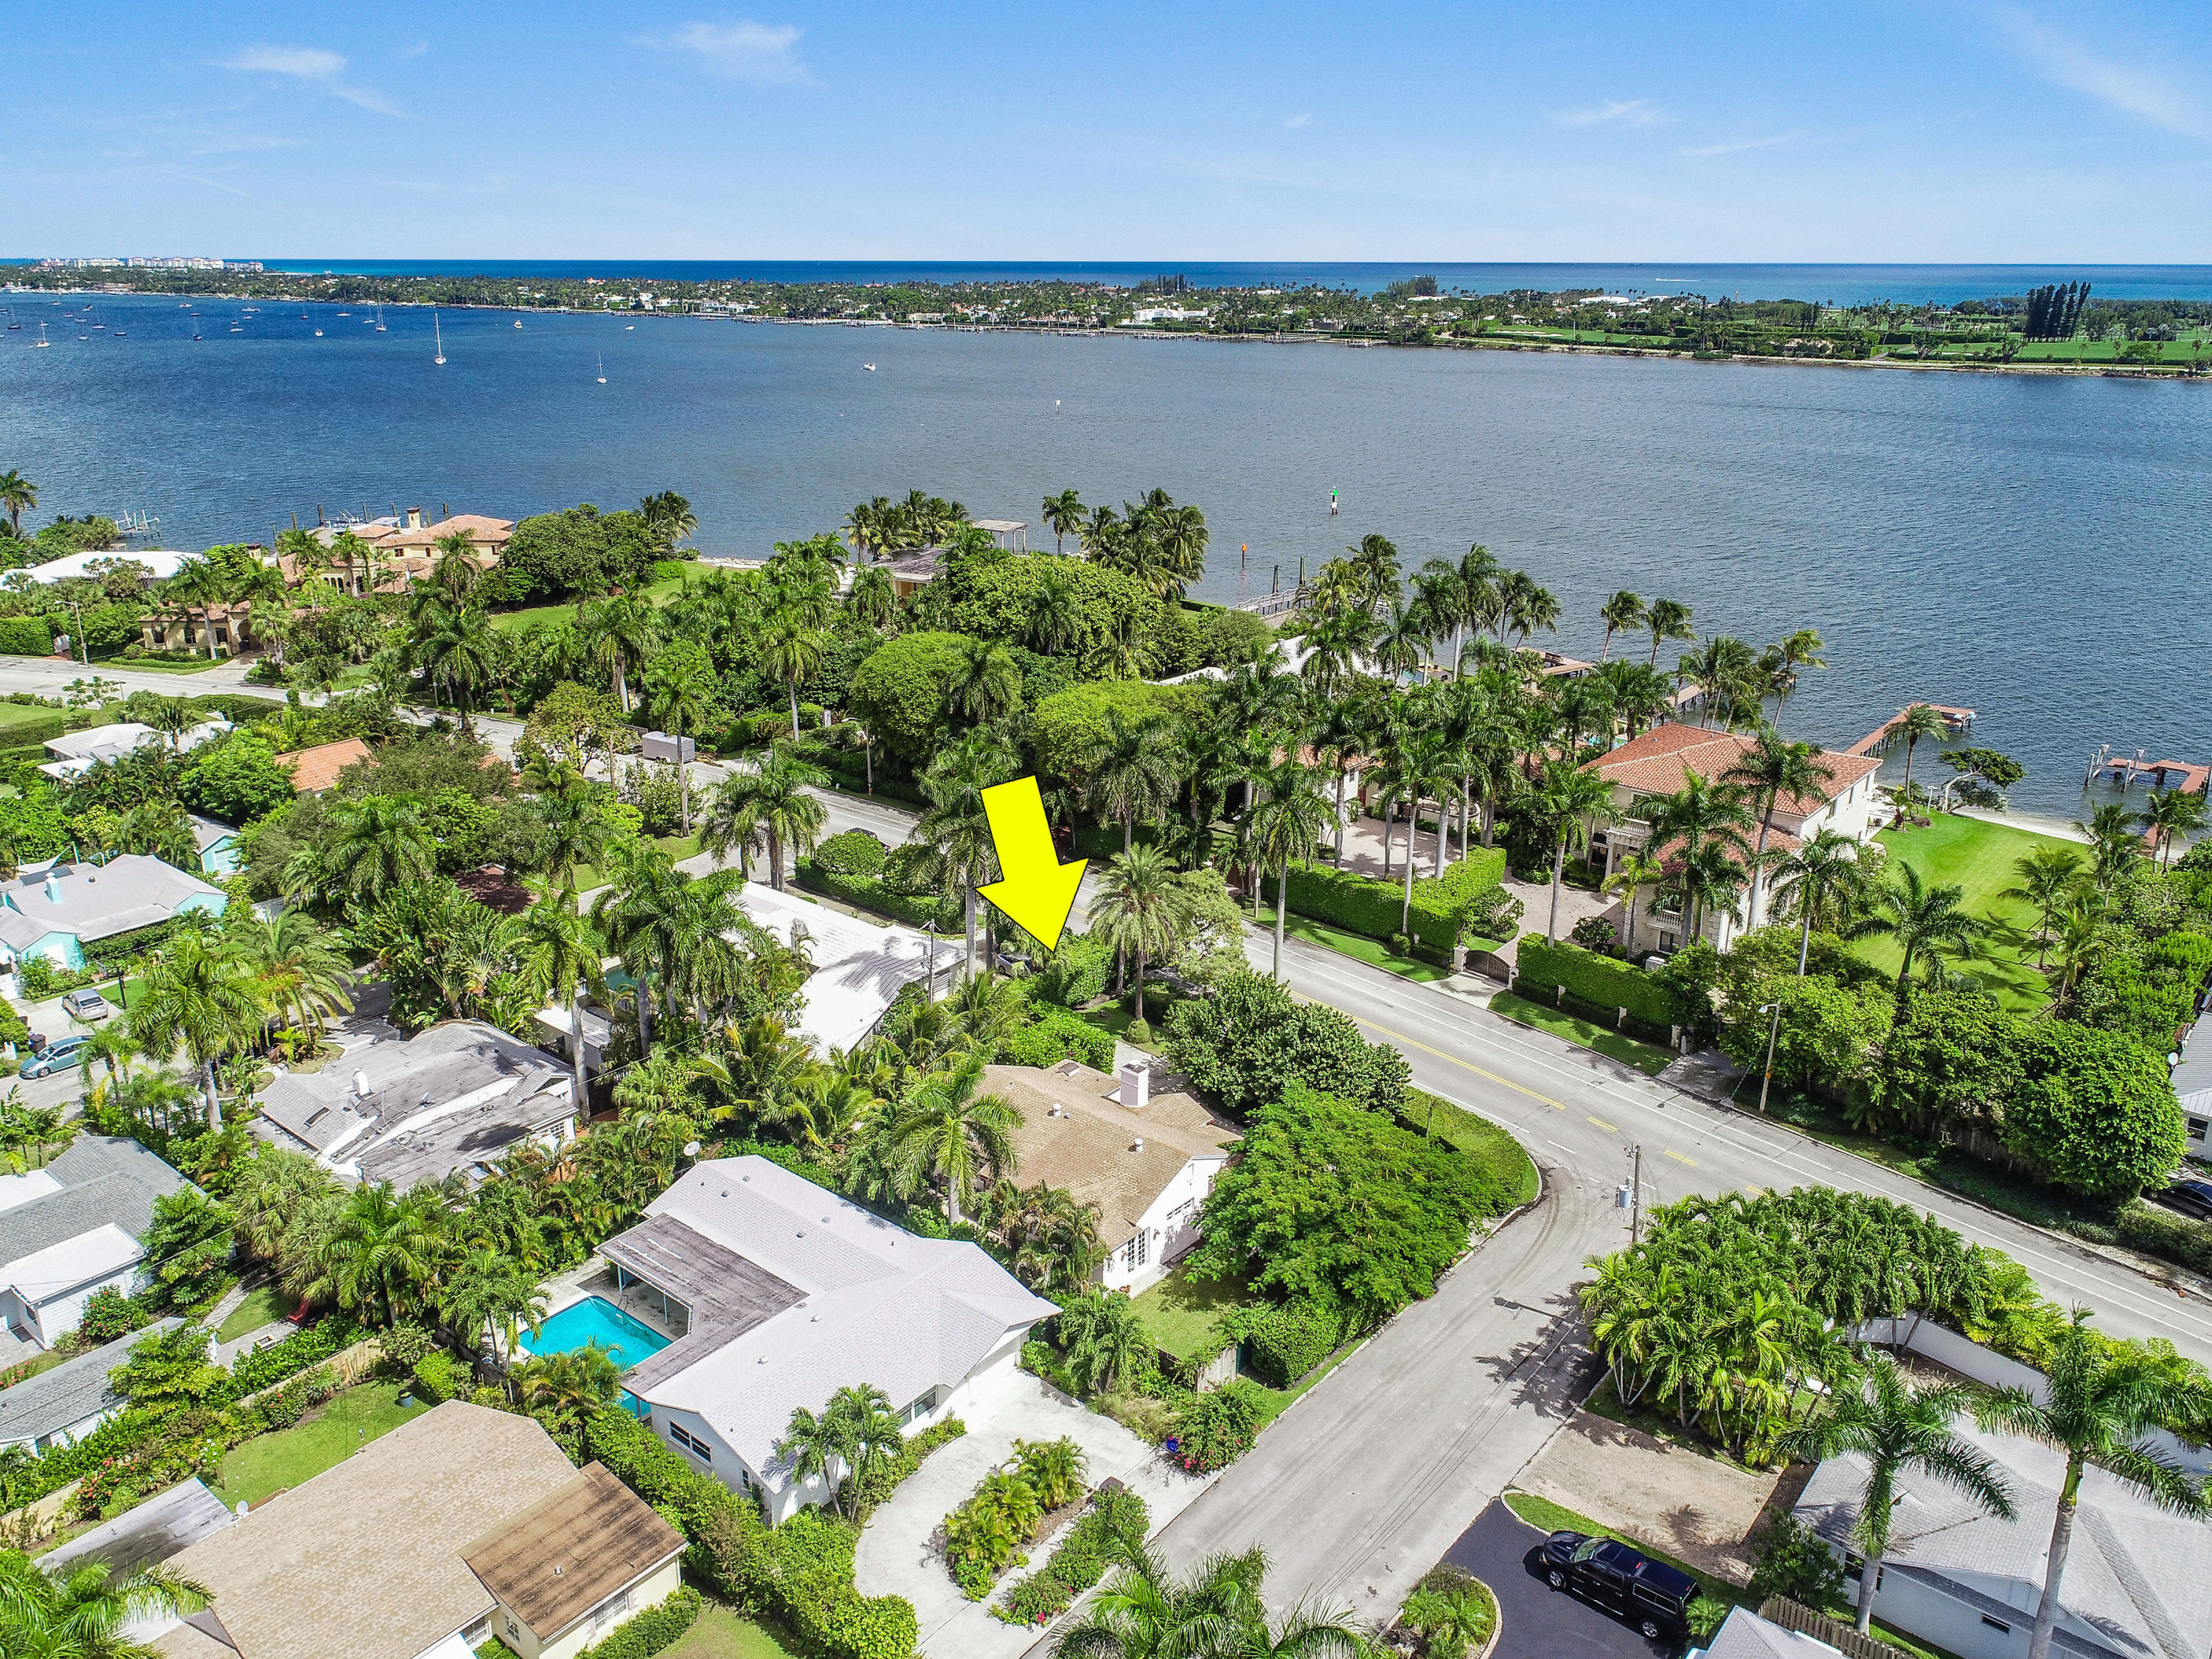 NORTH SHORE TERRACE HOMES FOR SALE